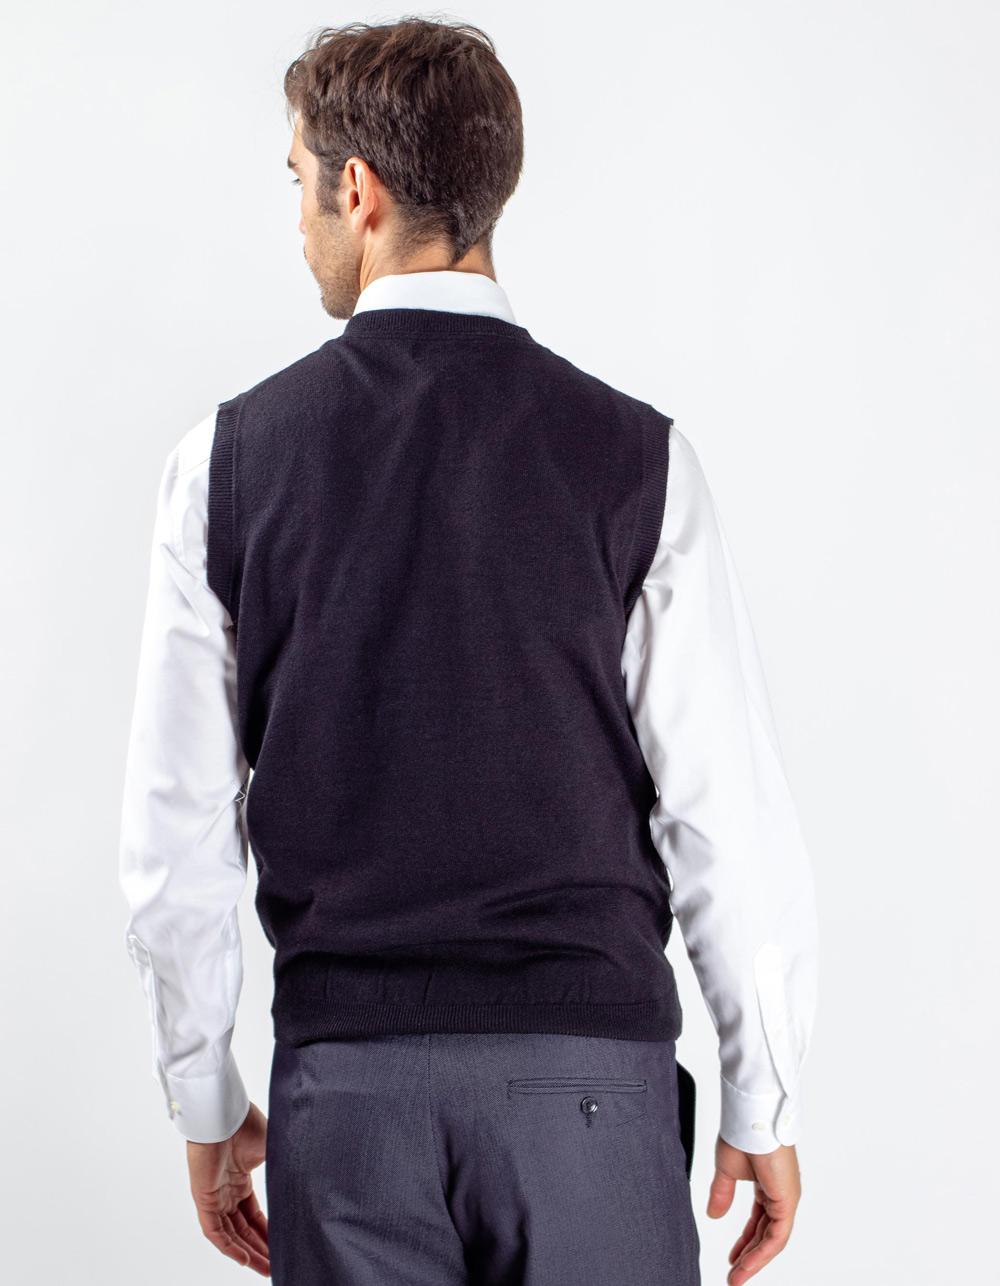 Black knitted waistcoat - Backside